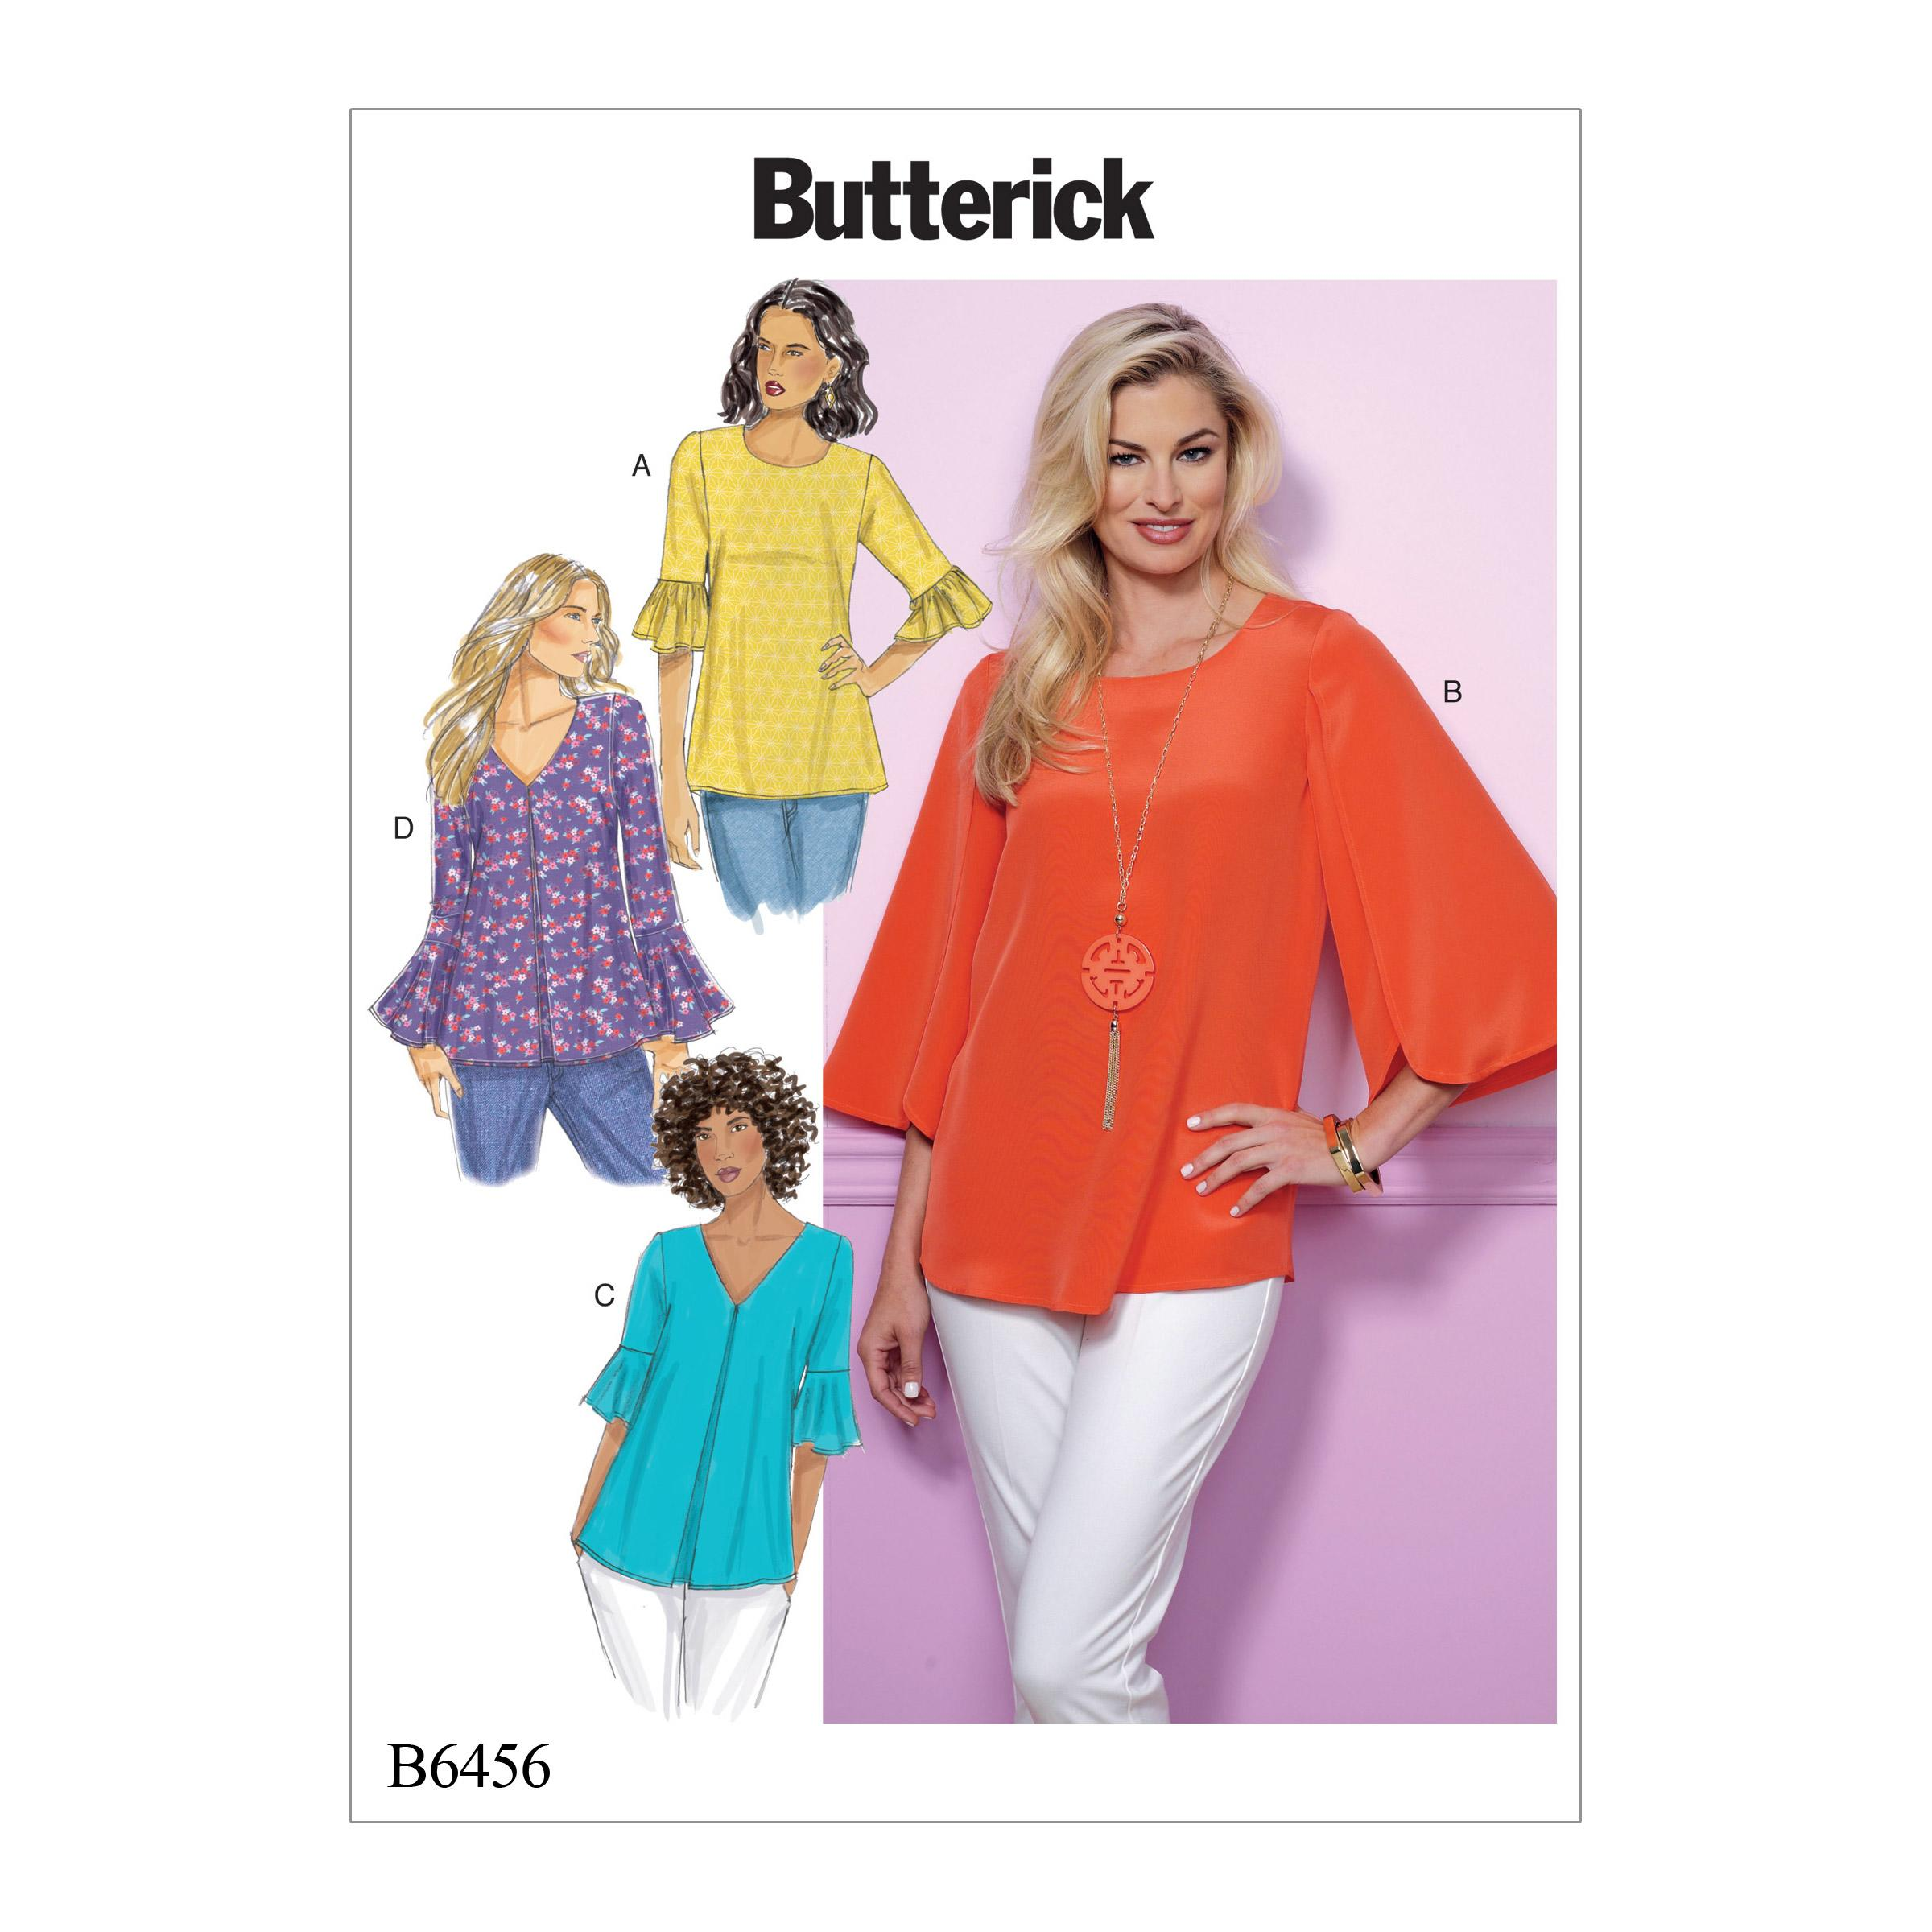 Butterick B6456 Misses' Tulip or Ruffle Sleeve Tops